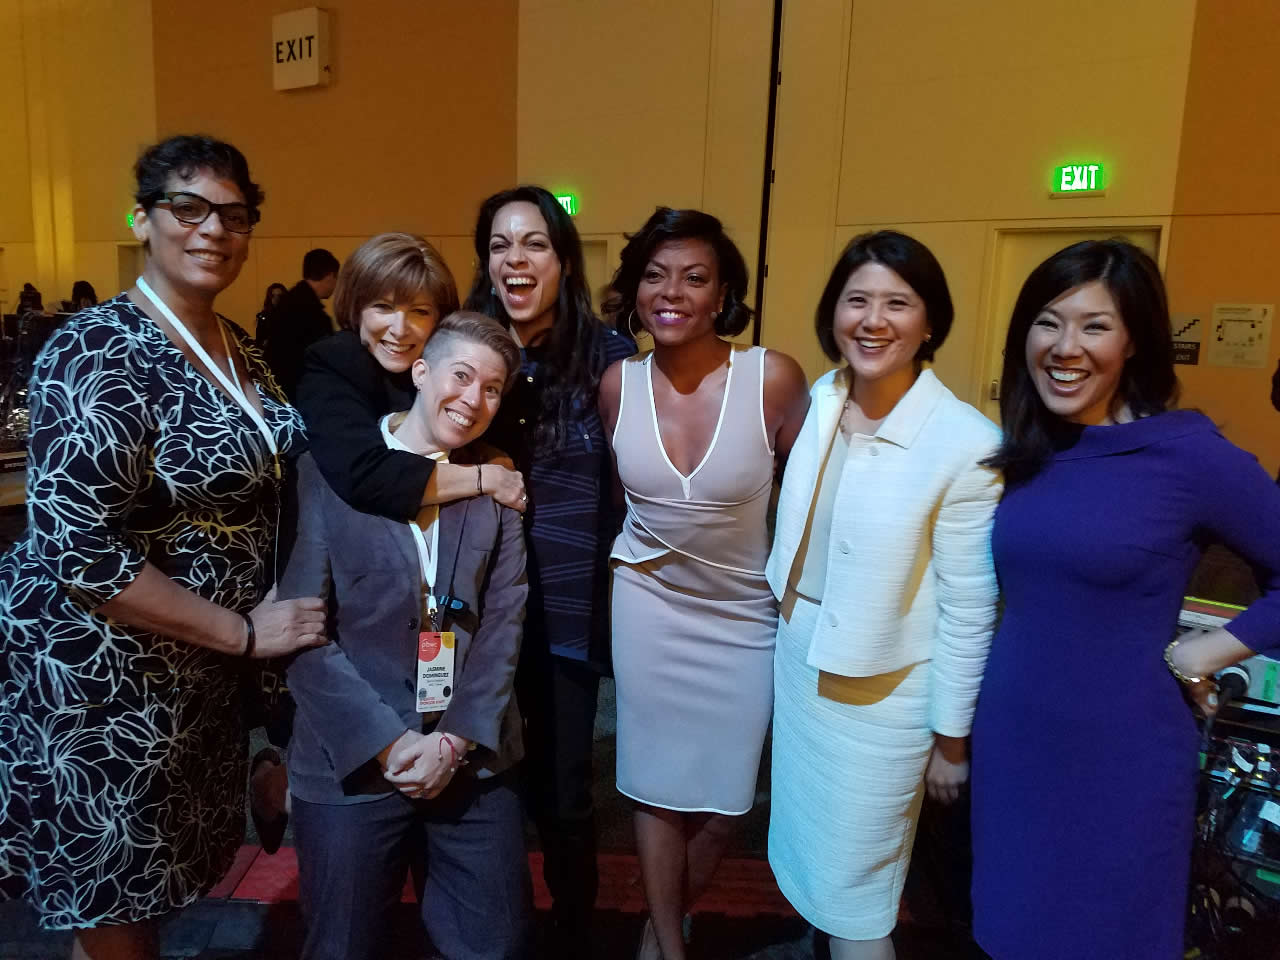 "<div class=""meta image-caption""><div class=""origin-logo origin-image none""><span>none</span></div><span class=""caption-text"">ABC7's Kristen Sze at the Professional BusinessWomen of California Conference in San Francisco on March, 28, 2017. (KGO-TV)</span></div>"